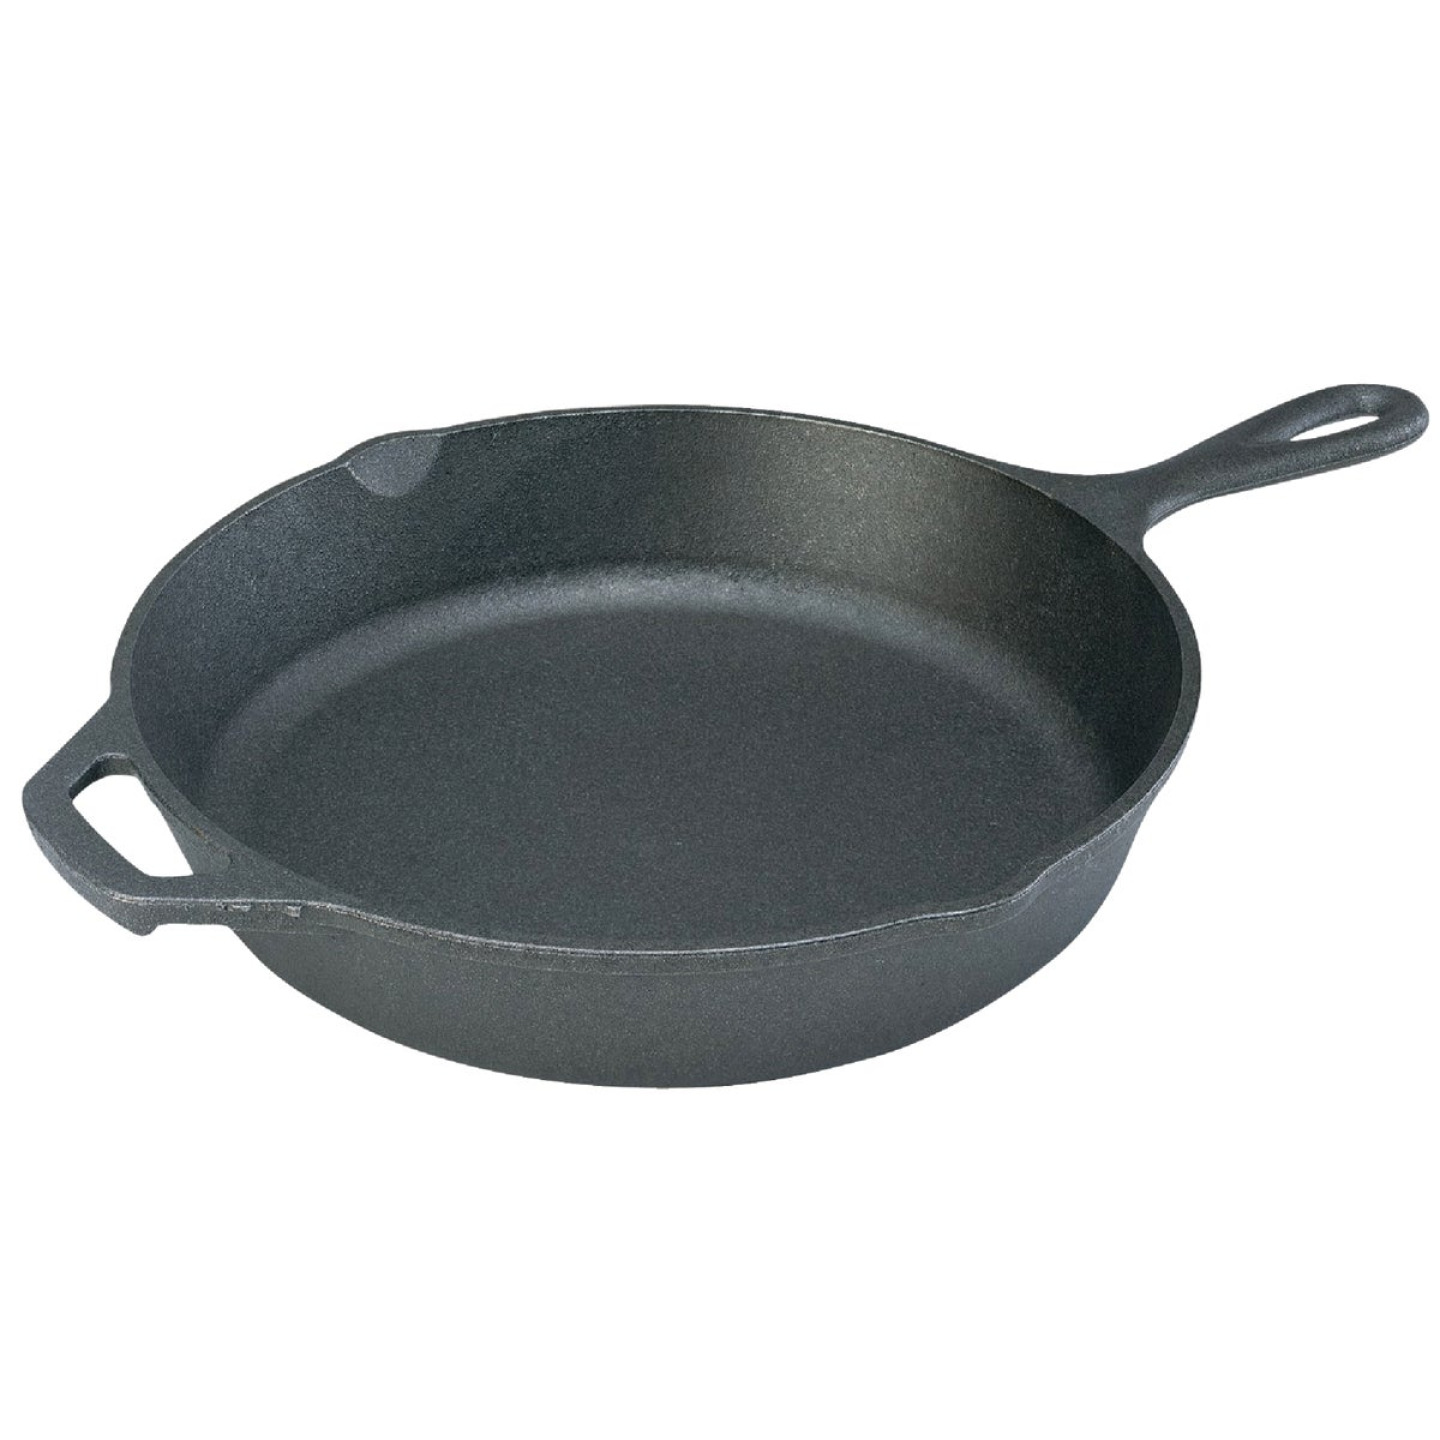 Lodge 12 In. Cast Iron Skillet with Assist Handle Image 1